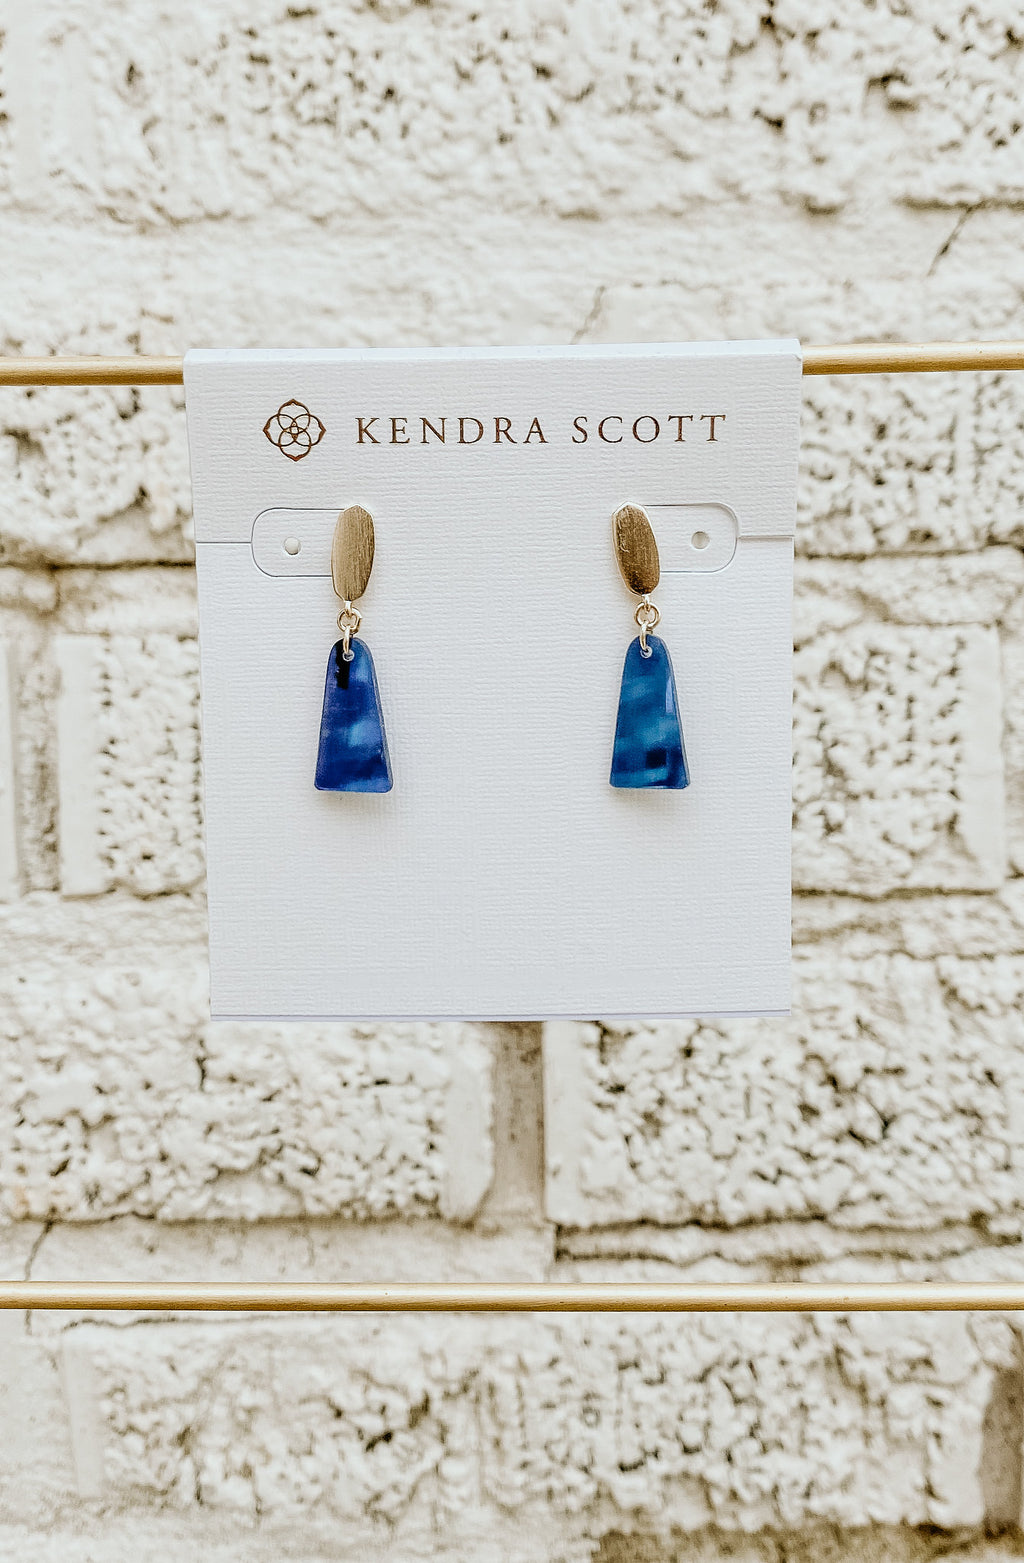 KENDRA SCOTT NOAH SMALL DROP EARRING